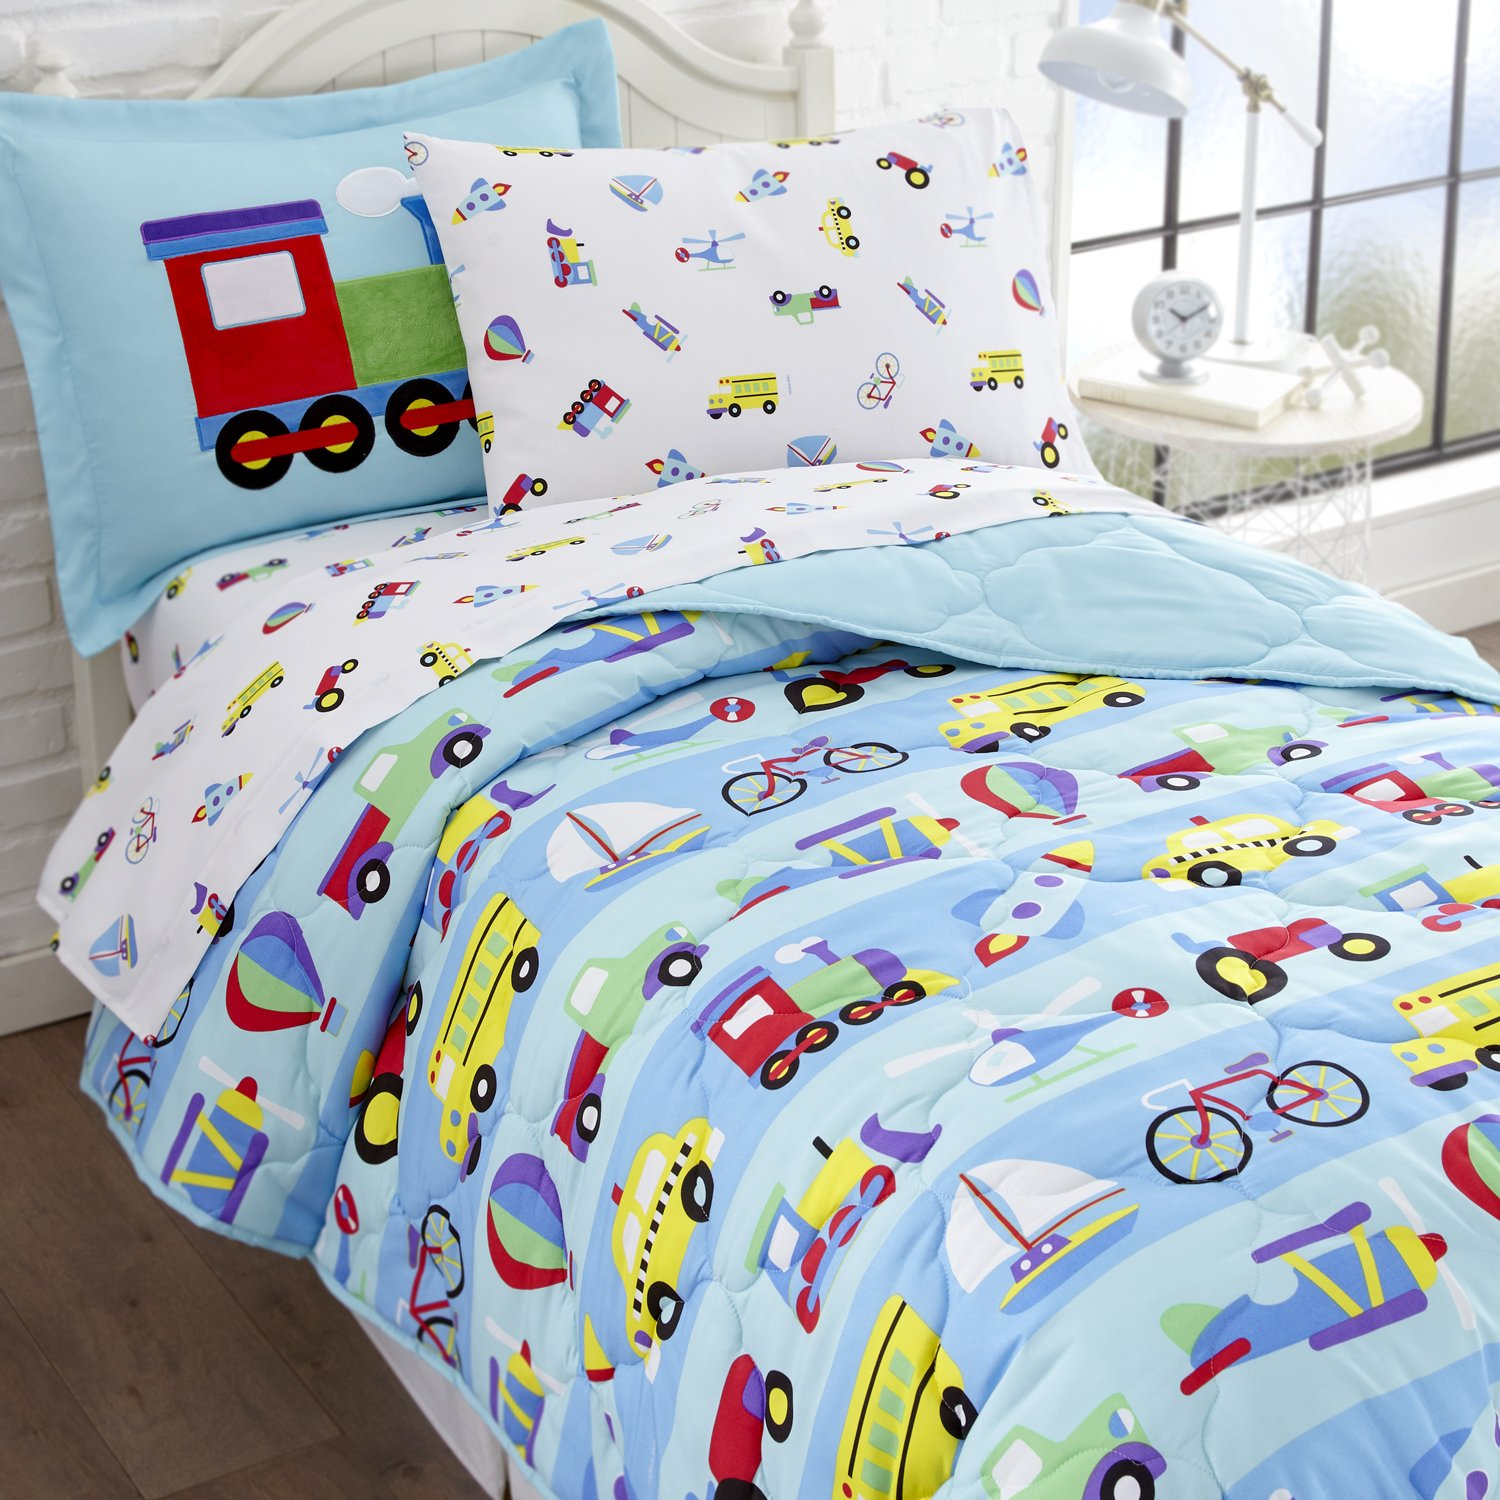 Mermaids Flat Sheet Includes Comforter and Embroidered Sham Fitted Sheet Wildkin 5 Piece Twin Bed-in-A-Bag Olive Kids Design Pillowcase 100/% Microfiber Bedding Set